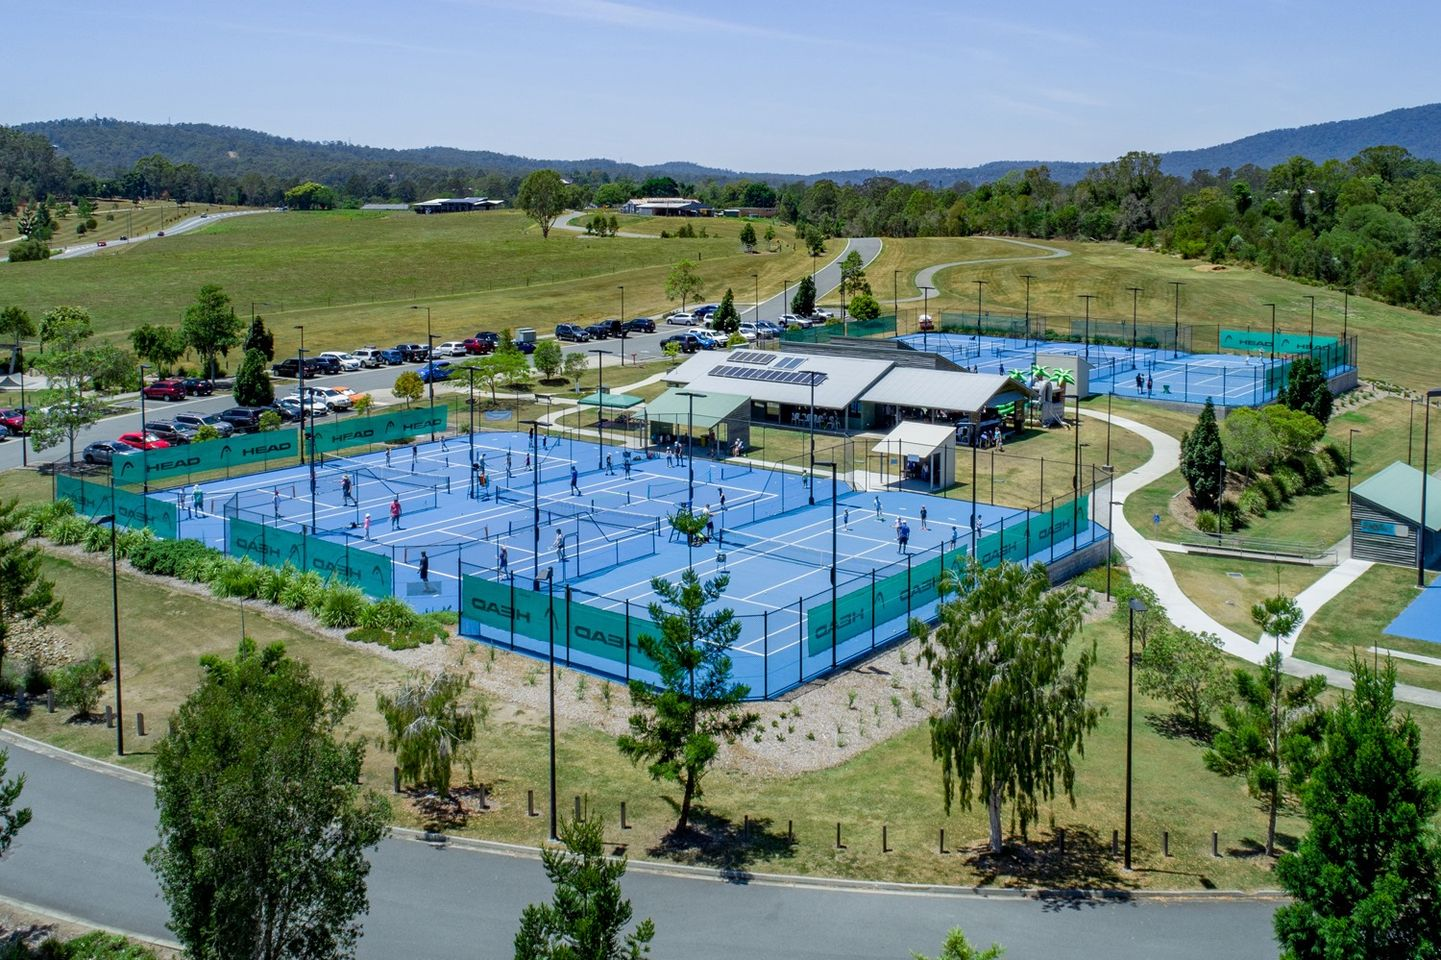 Southern Cross Tennis Samford Parklands outdoor tennis courts